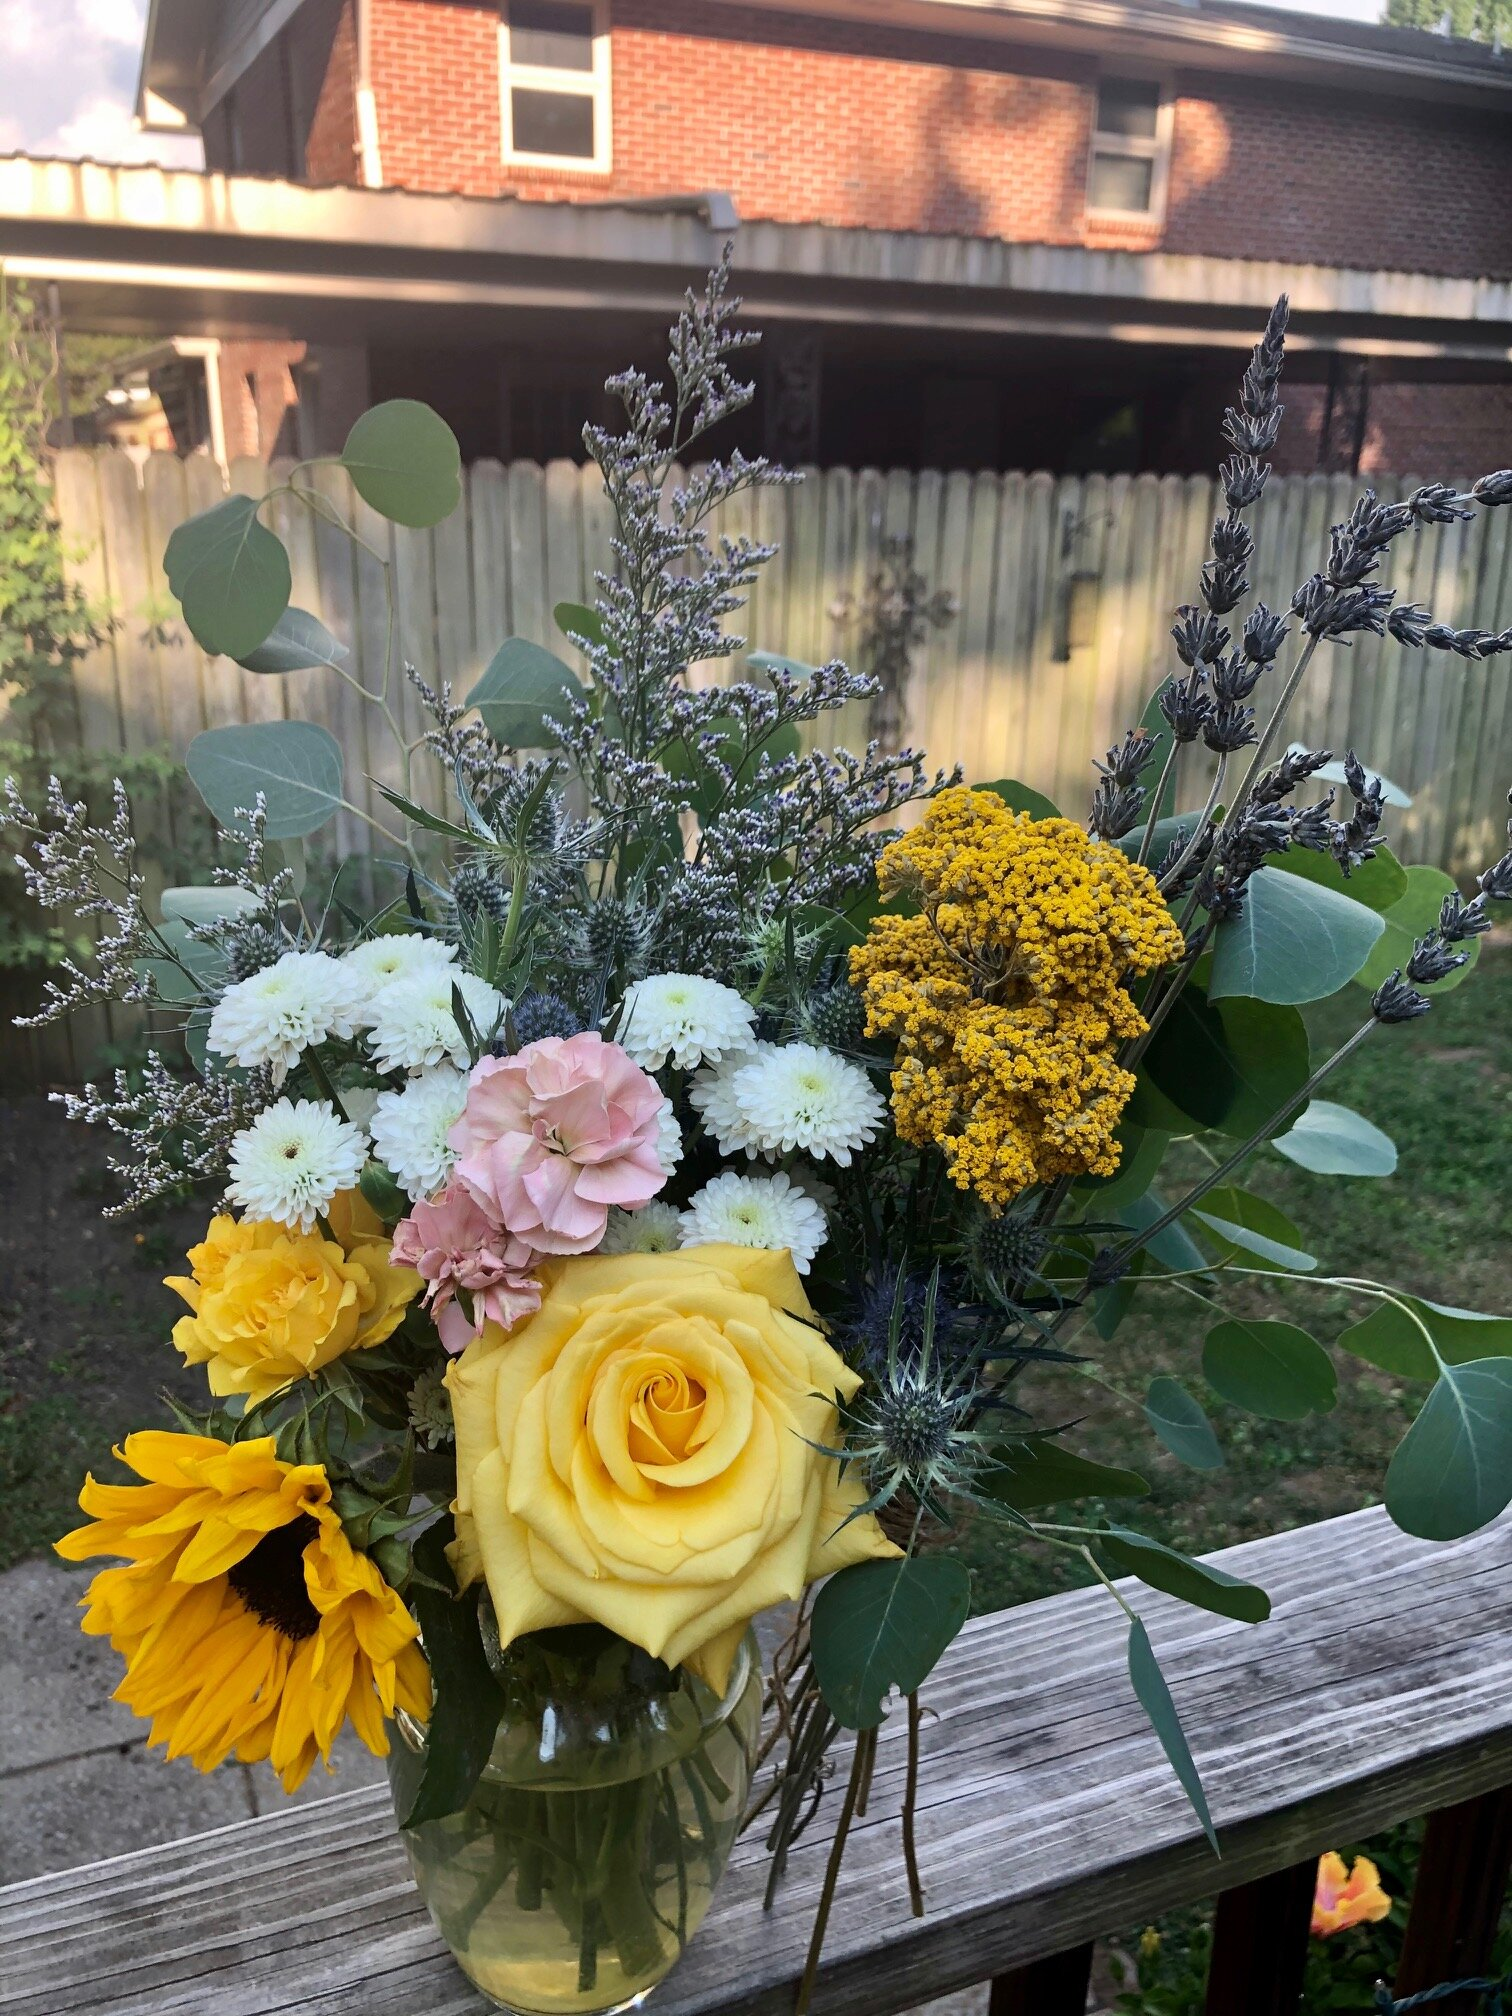 17 Excellent Ingredients For Therapeutic Edible Flower Bouquets